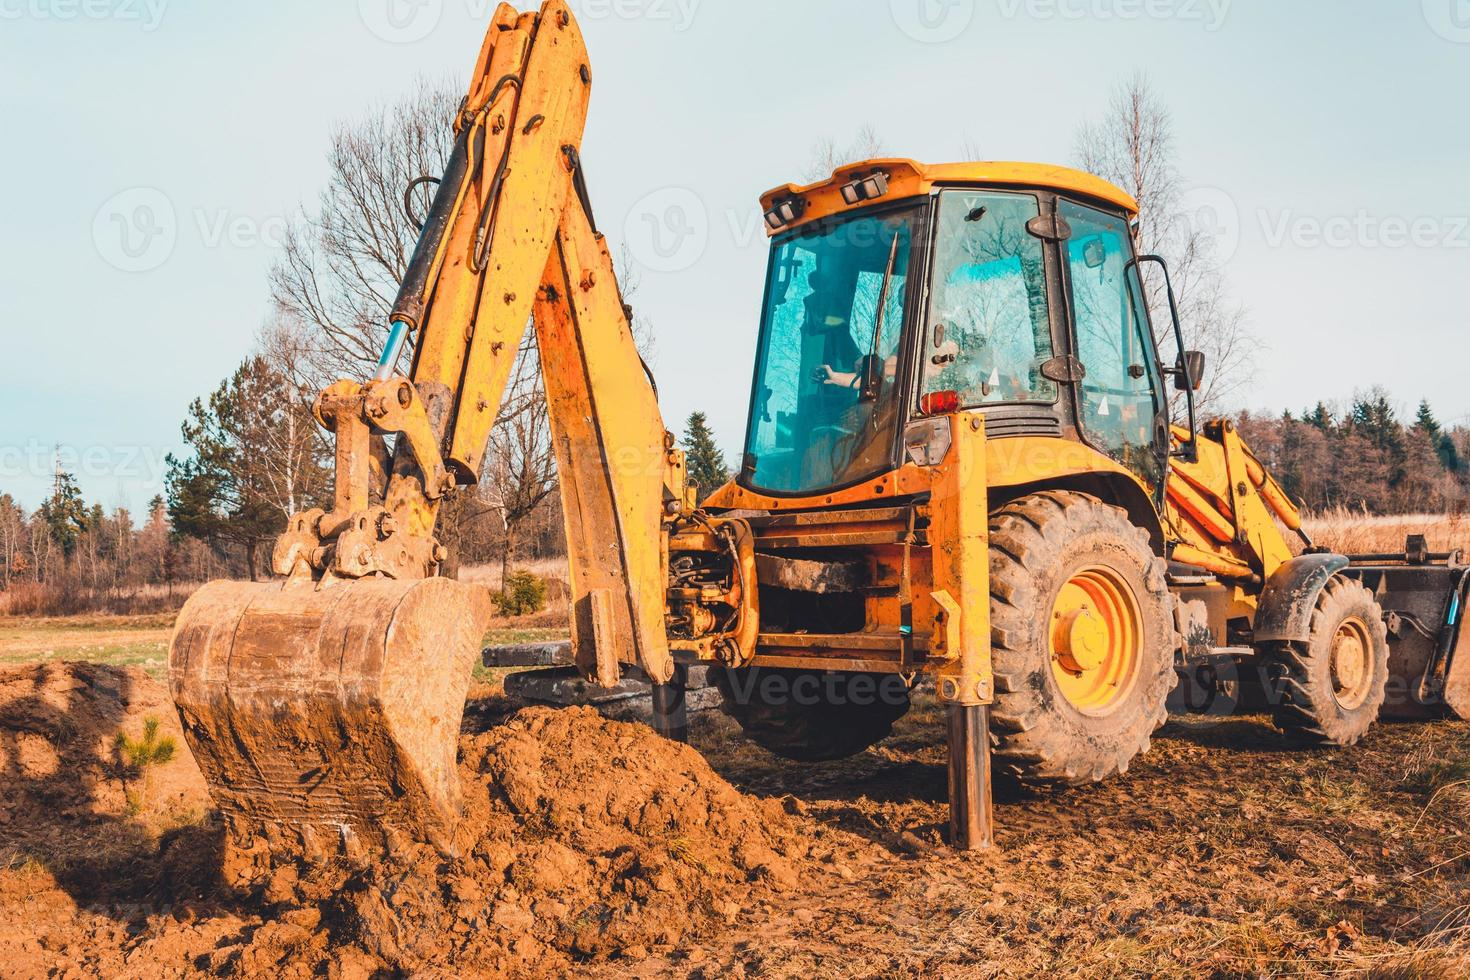 The excavator clears the ground to pave the road in private territory. photo